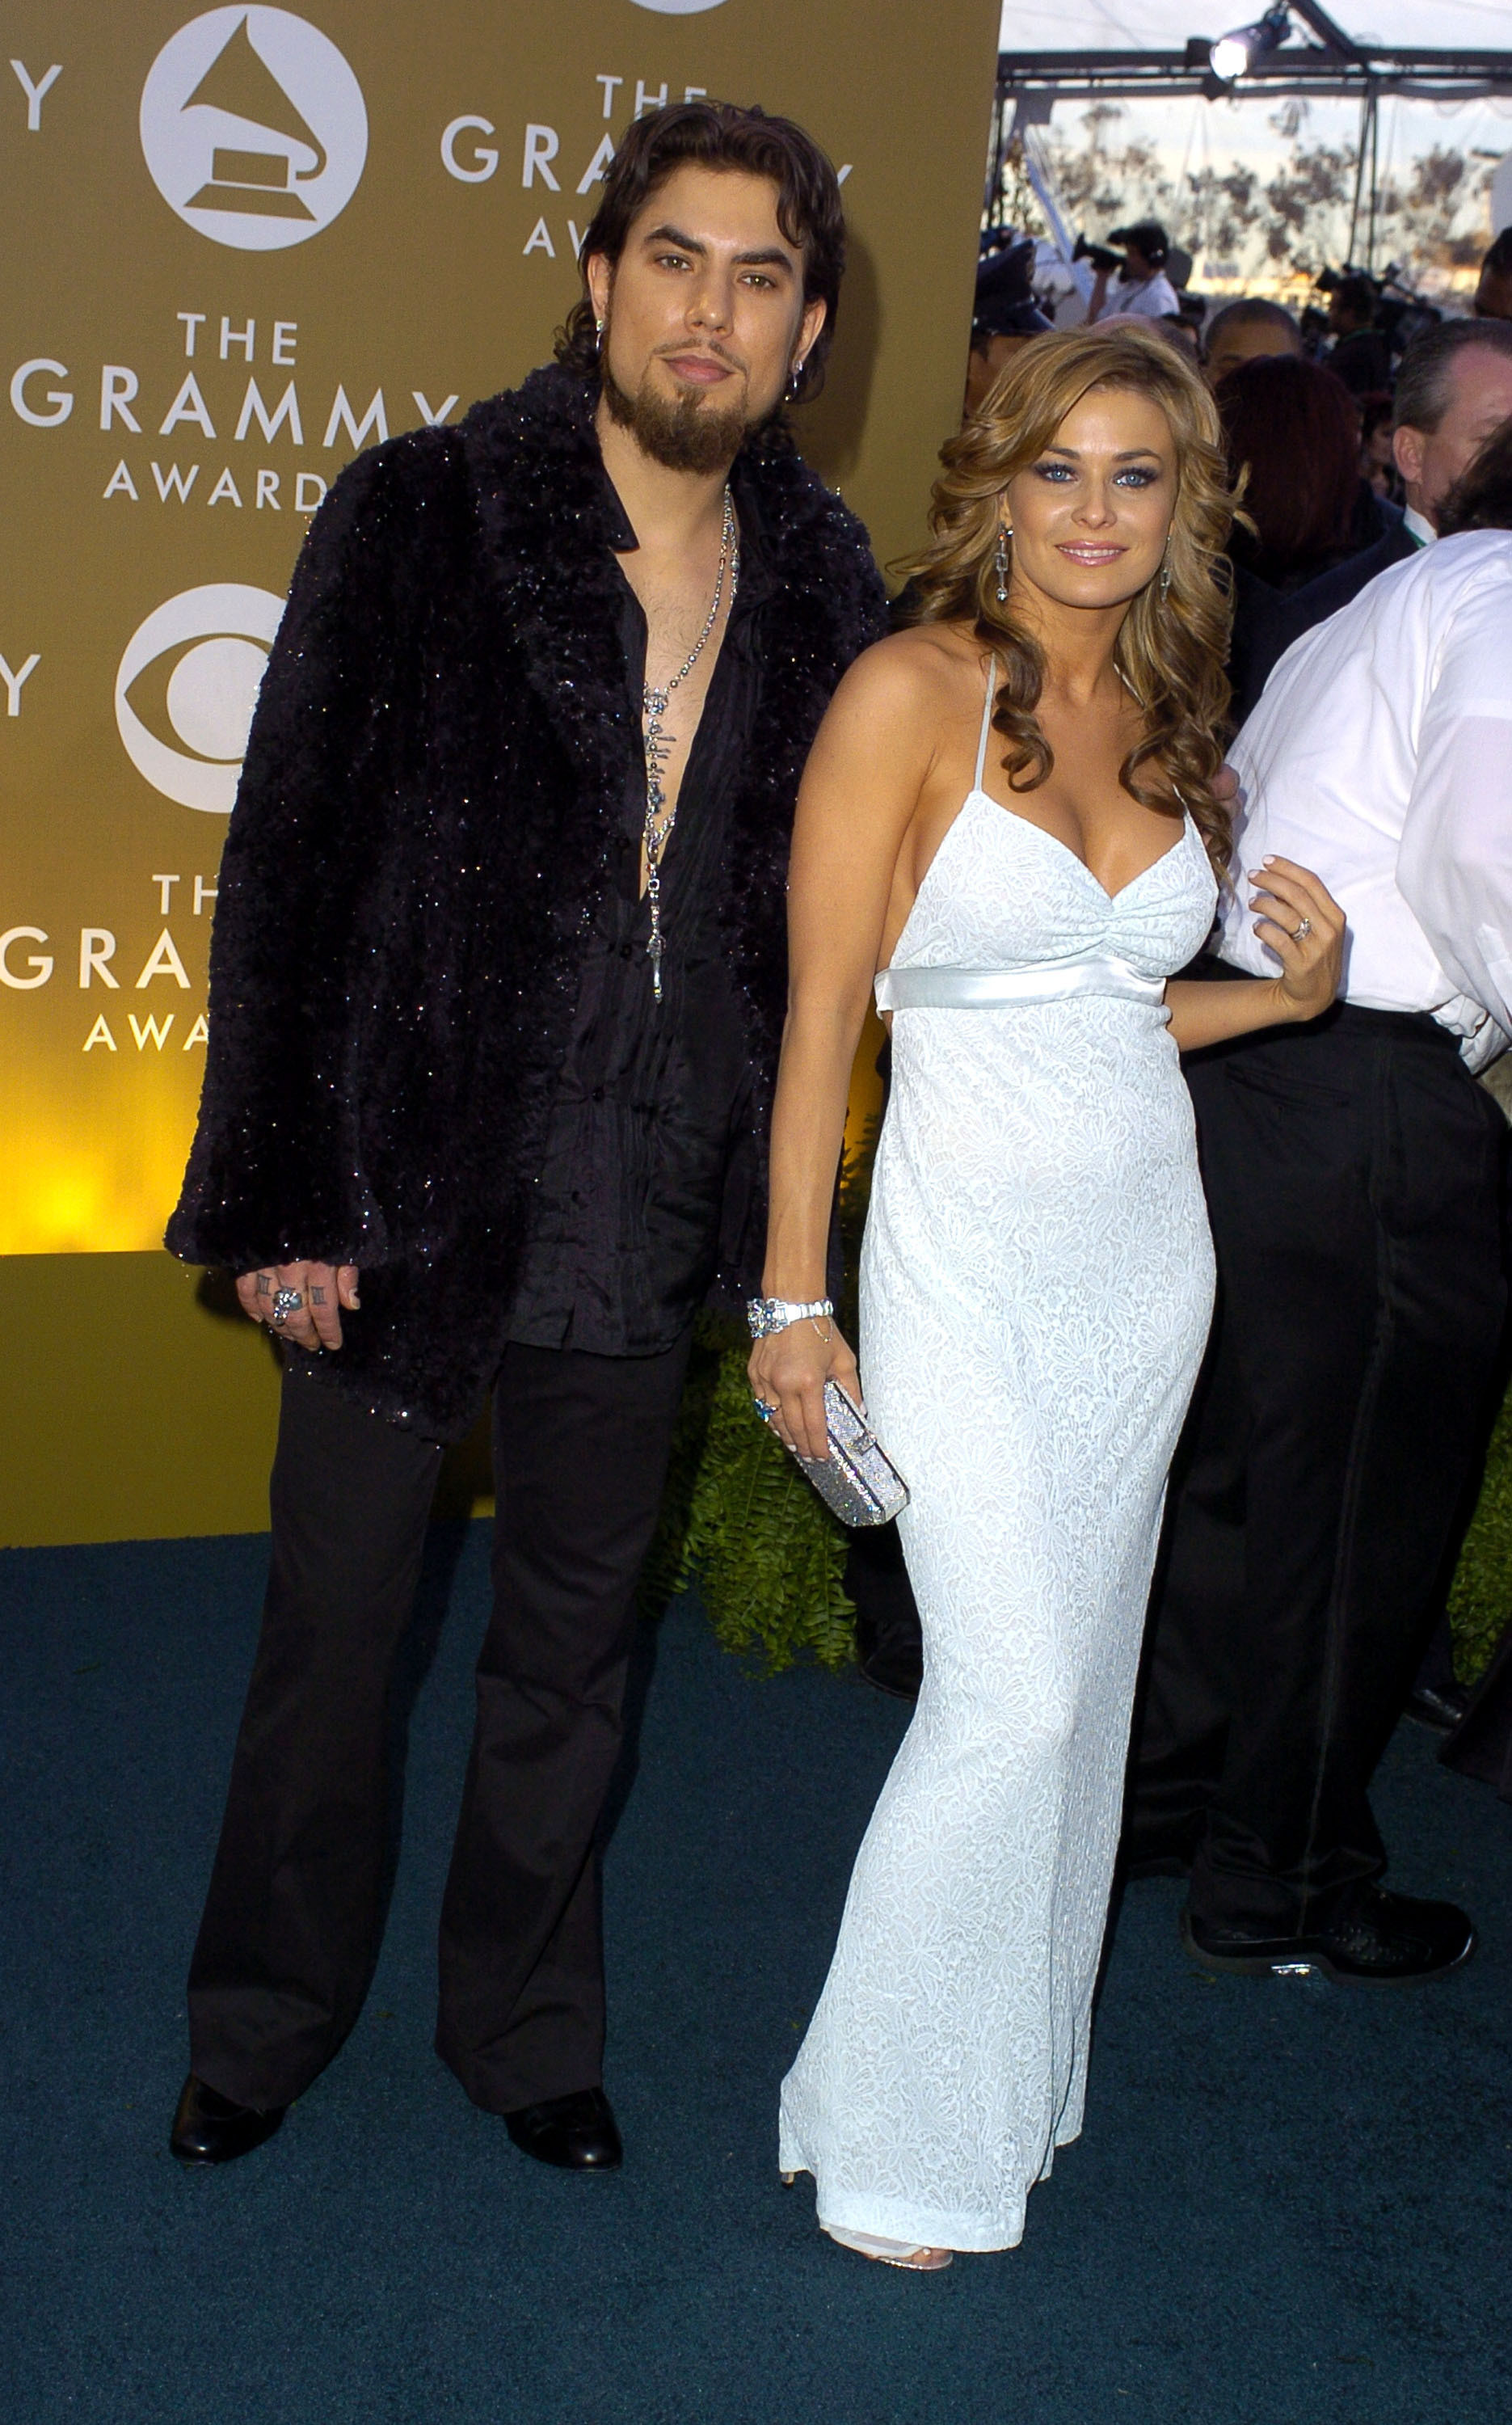 Dave Navarro And Carmen Electra 2004 Famous Grammy Couples You Forgot About Livingly